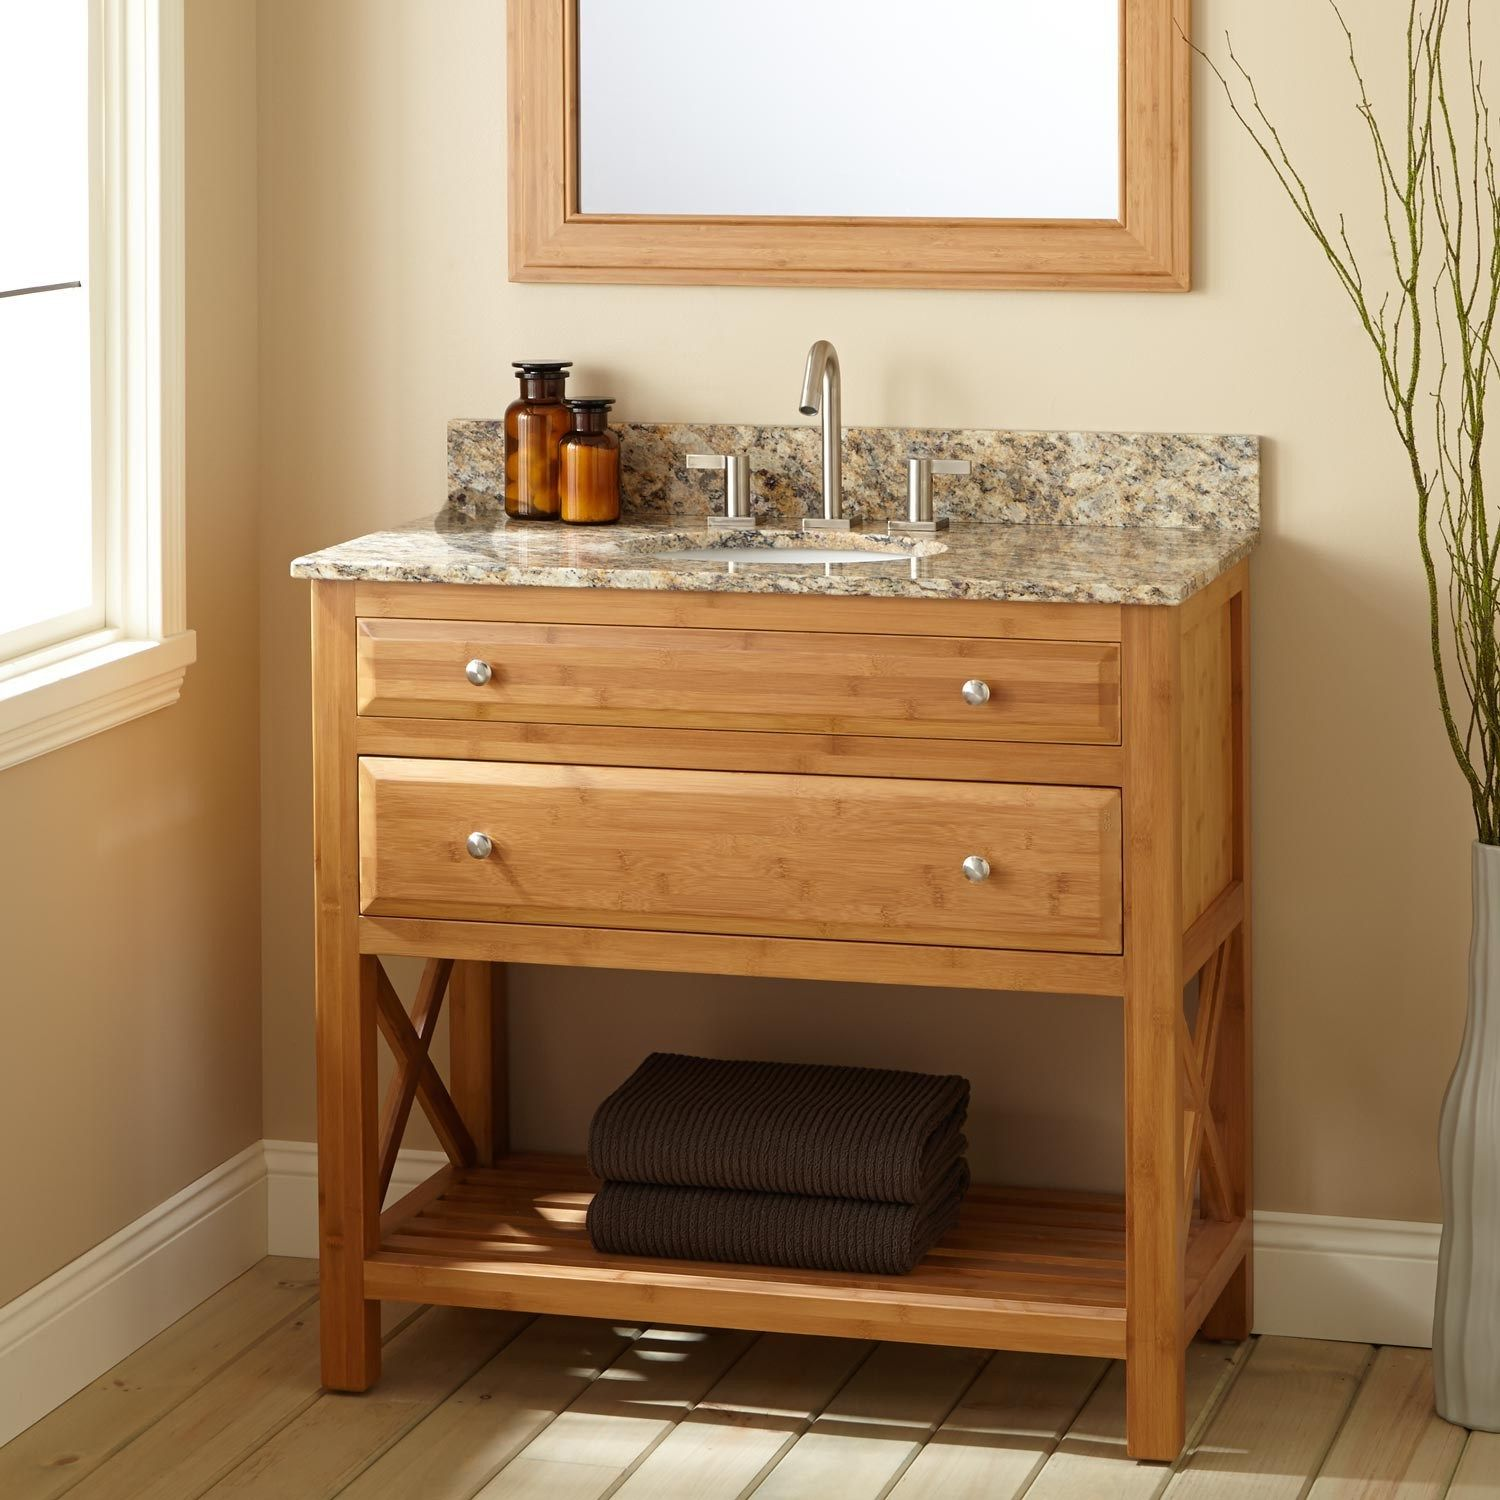 Narrow Depth Bathroom Vanity With Sink 36 Narrow Depth Mesmerizing Narrow Depth Bathroom Vanity Inspiration